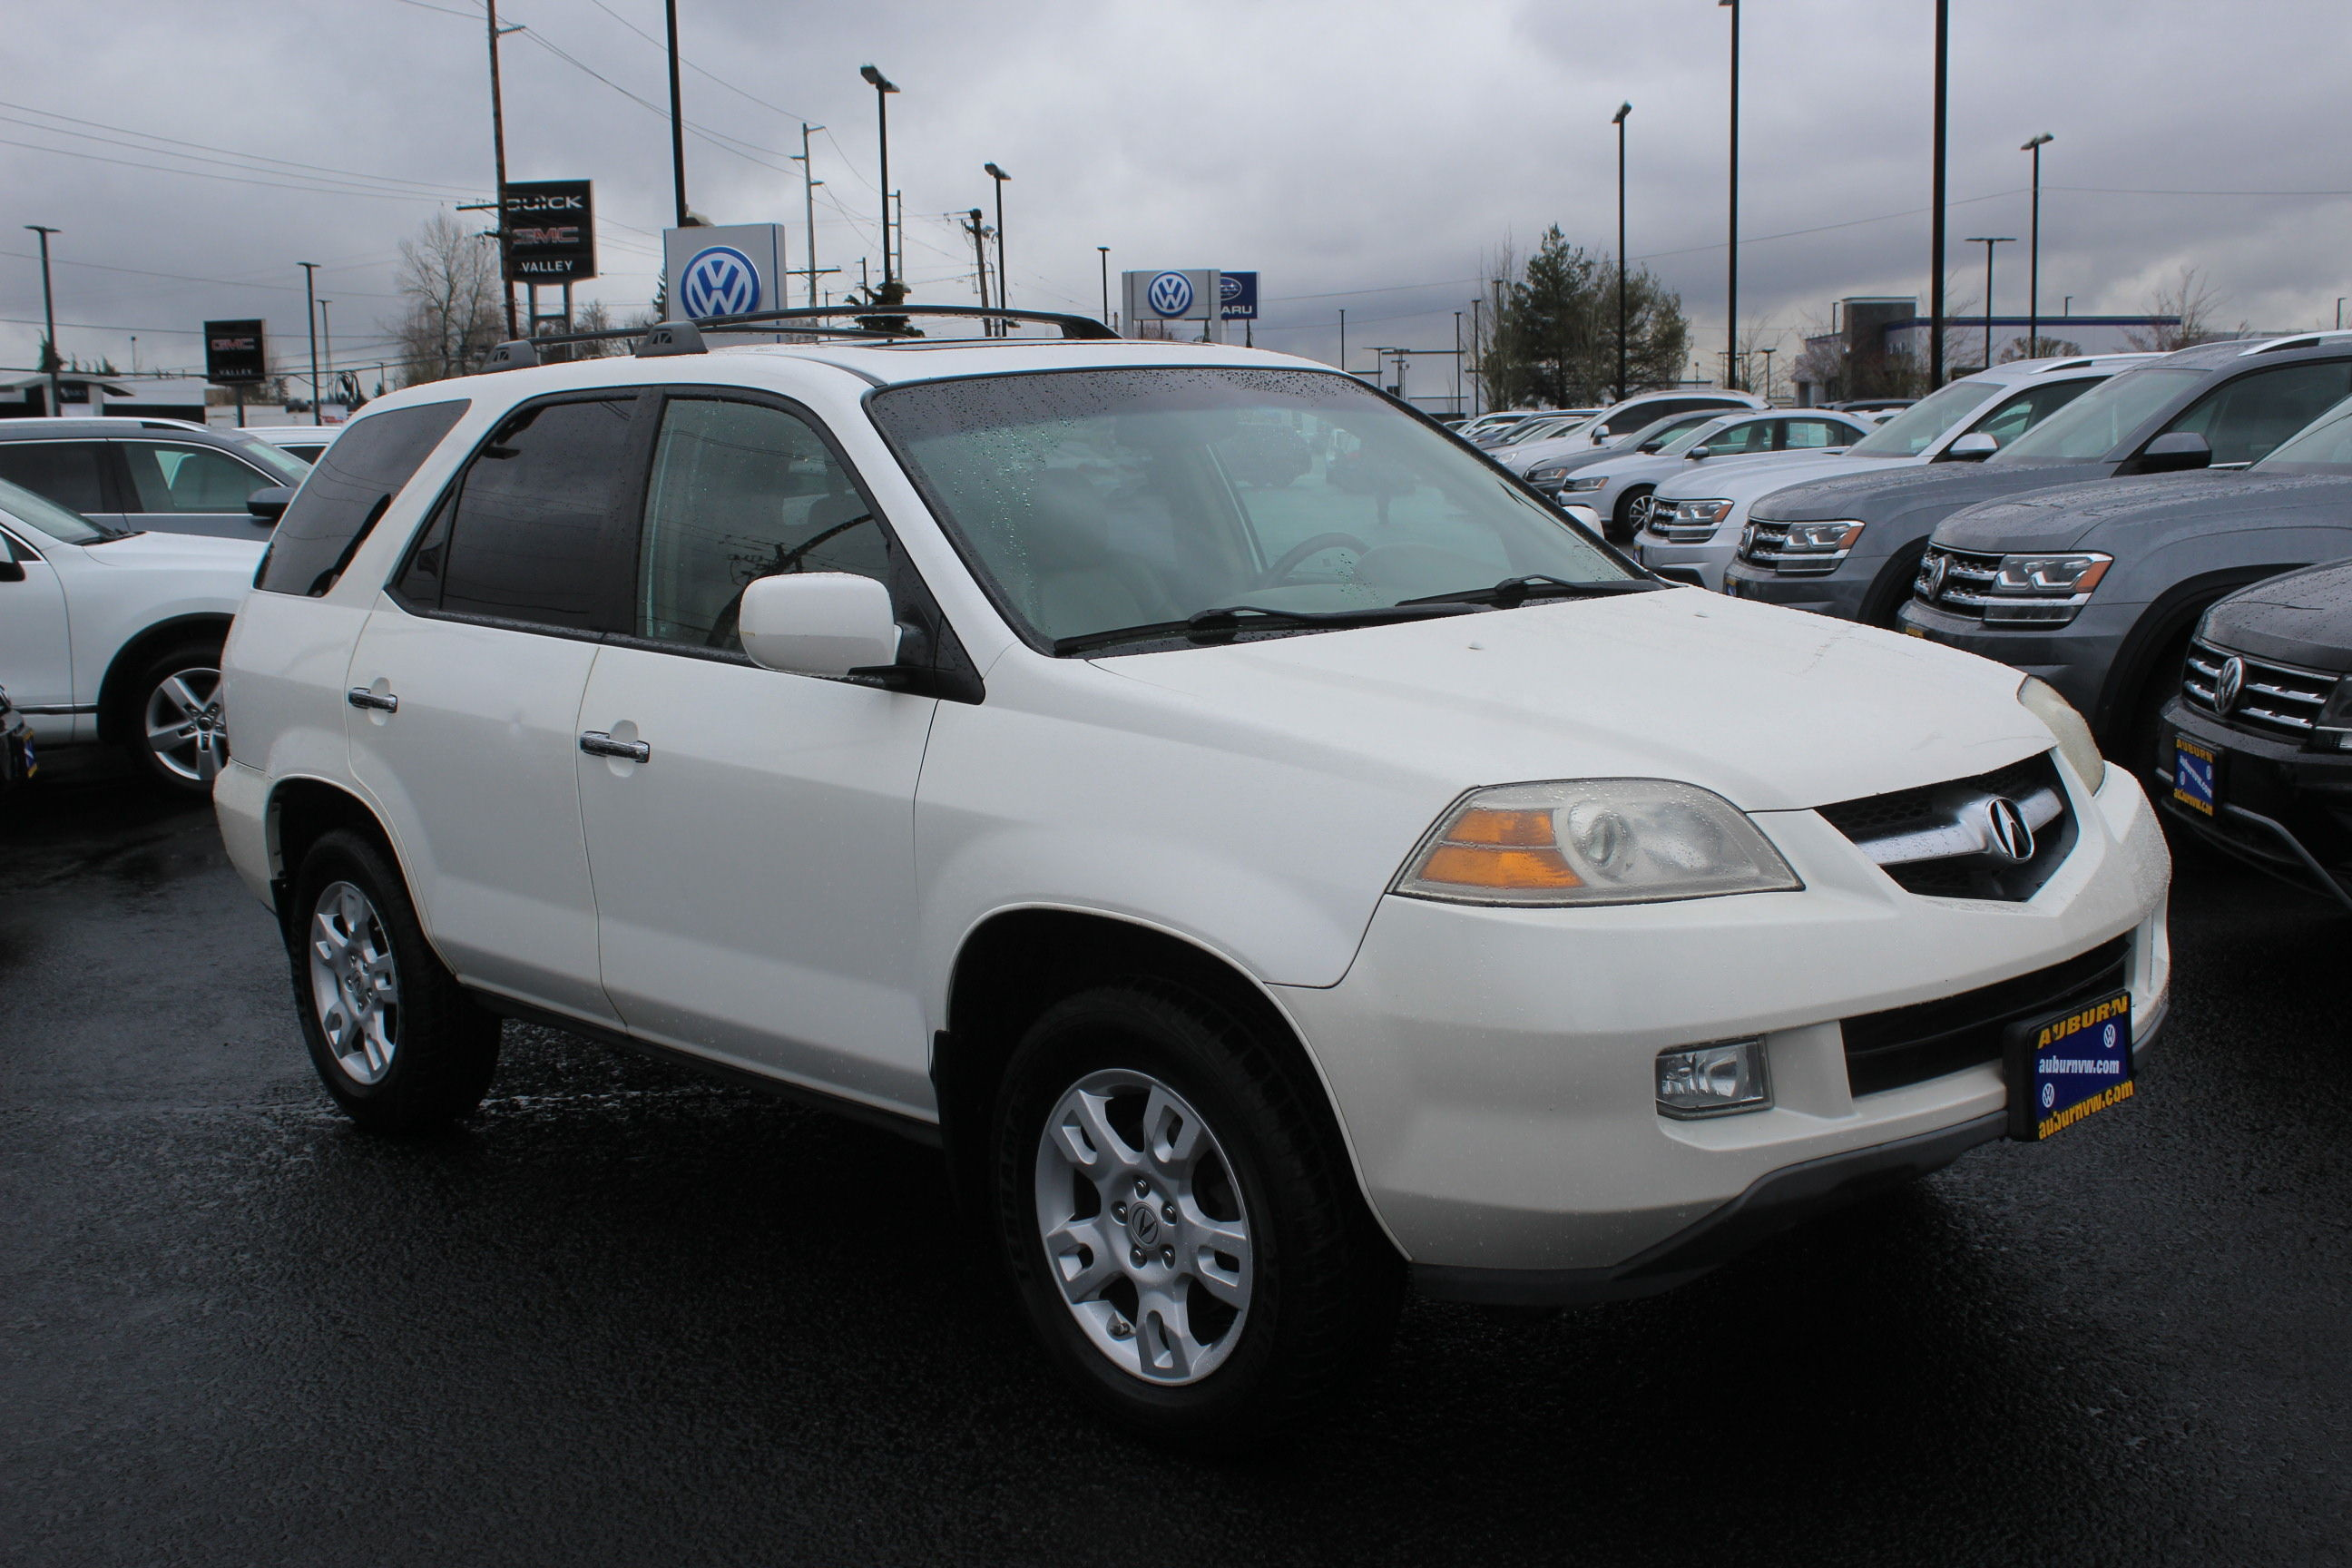 Pre-Owned 2005 Acura MDX Touring Navigation